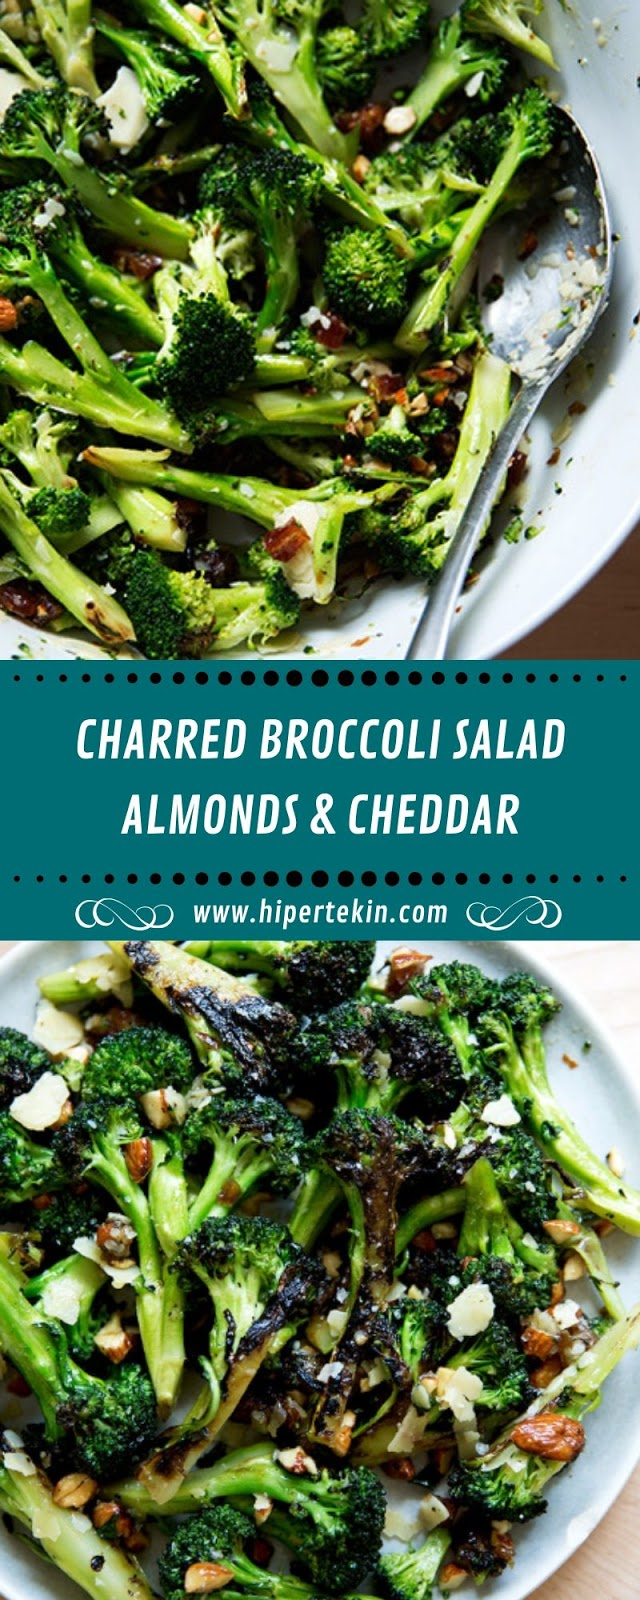 CHARRED BROCCOLI SALAD, ALMONDS & CHEDDAR